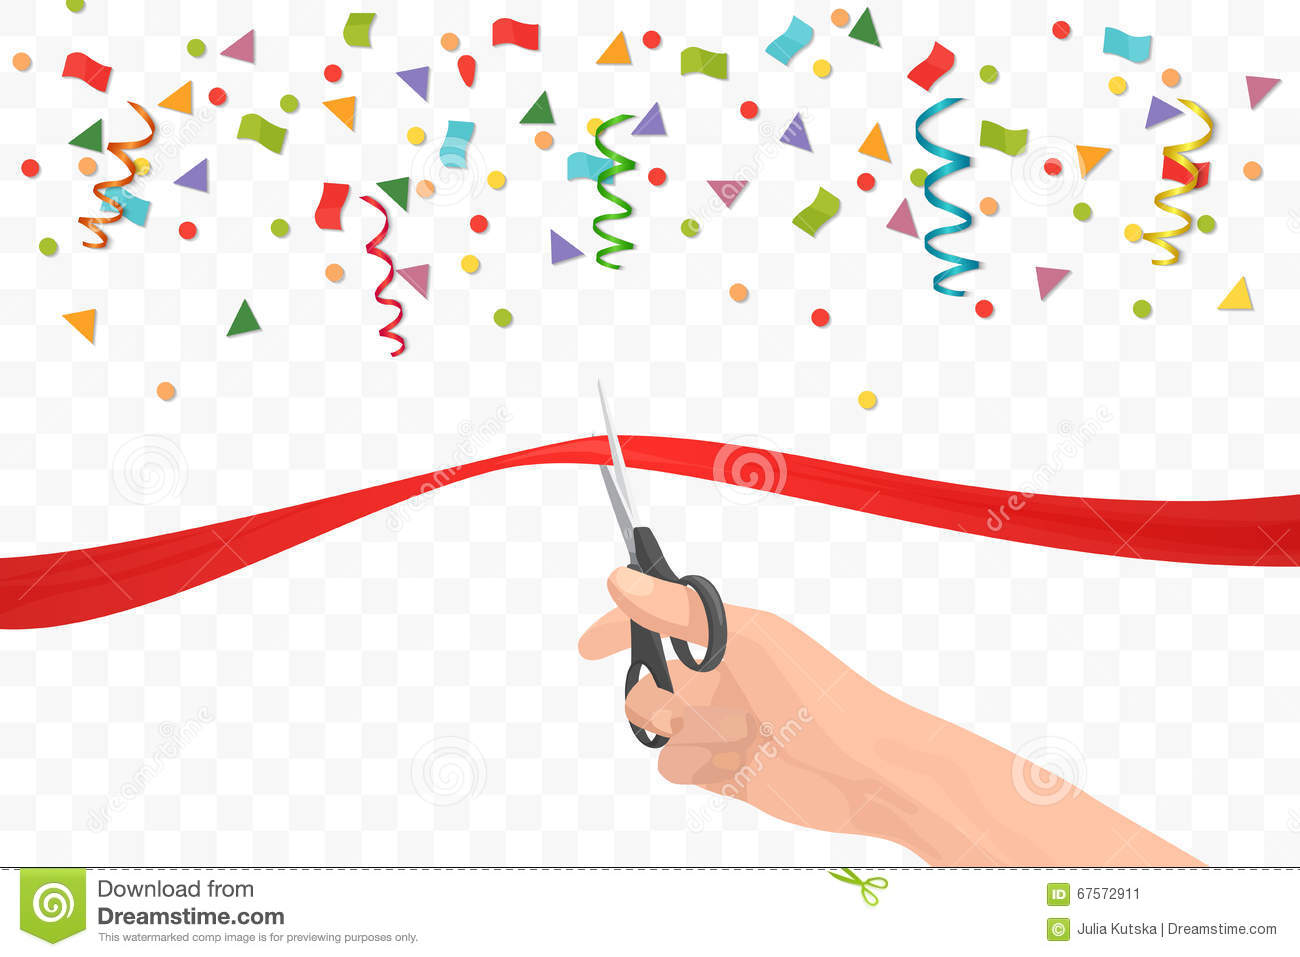 Hand Holding Scissors And Cutting Red Ribbon On The